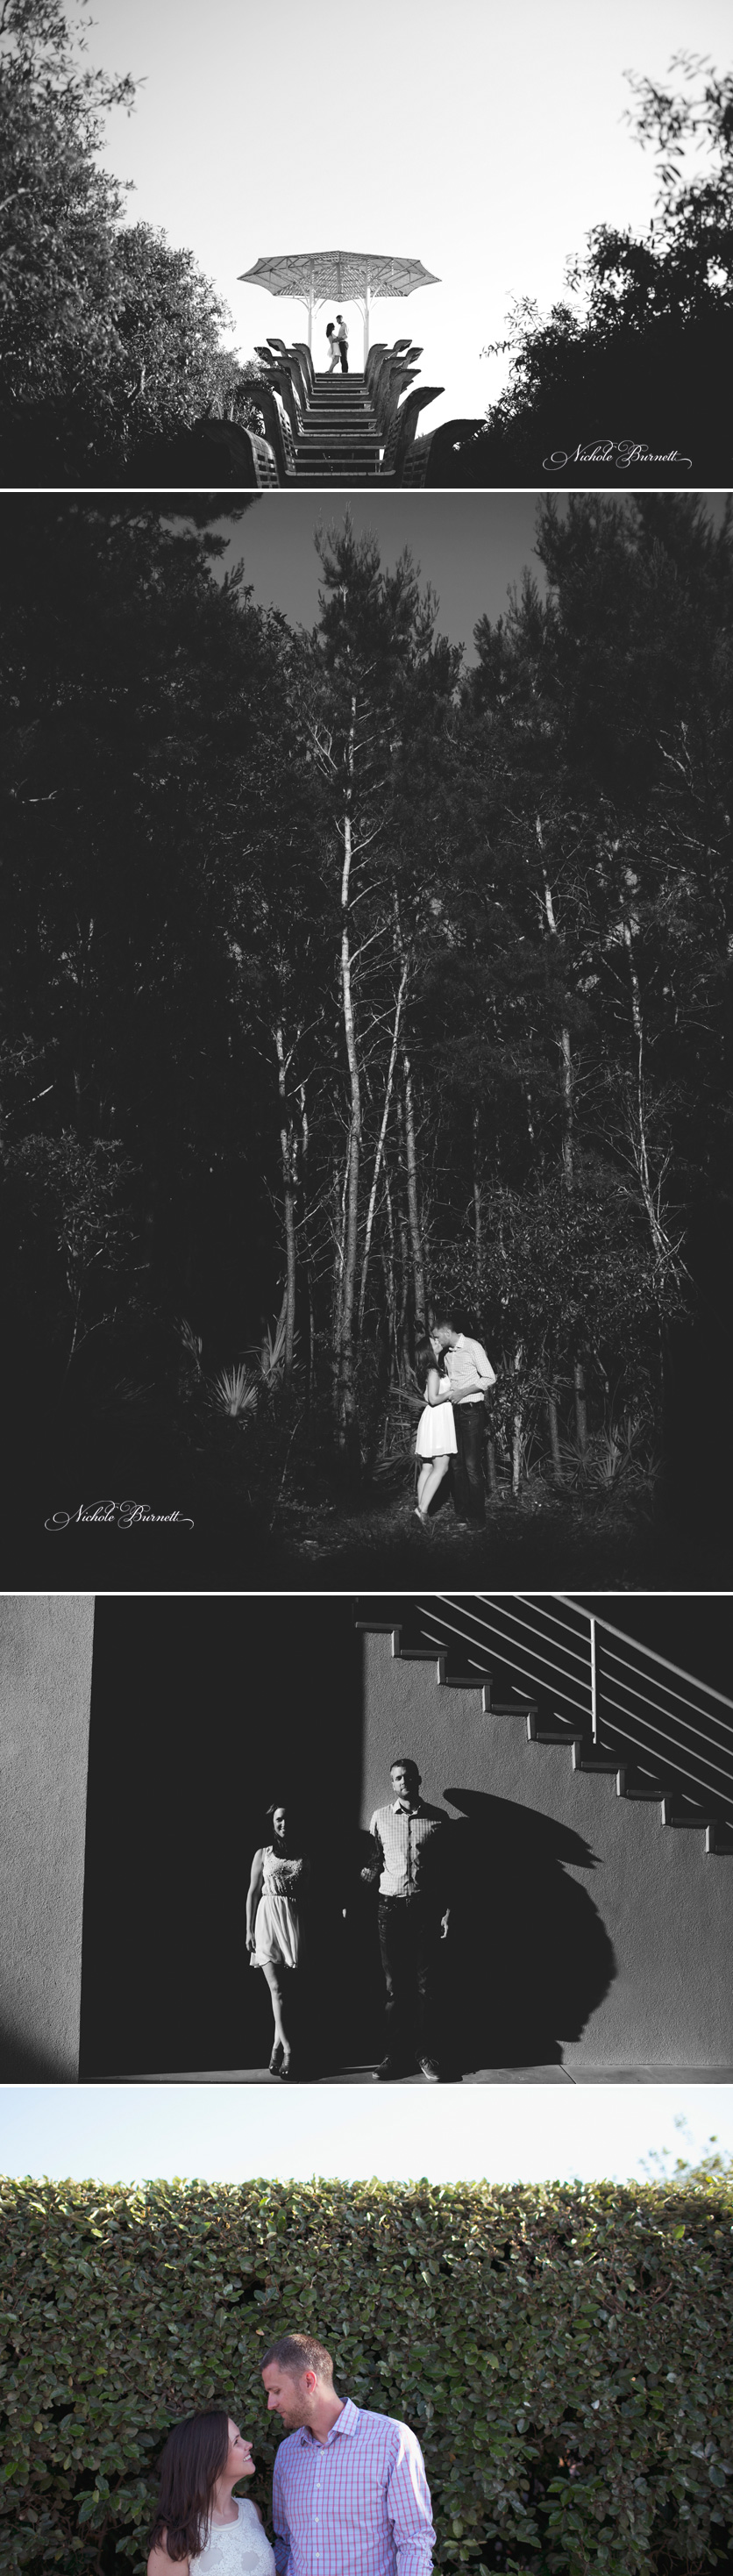 wedding-photographer-santa-rosa-beach-florida